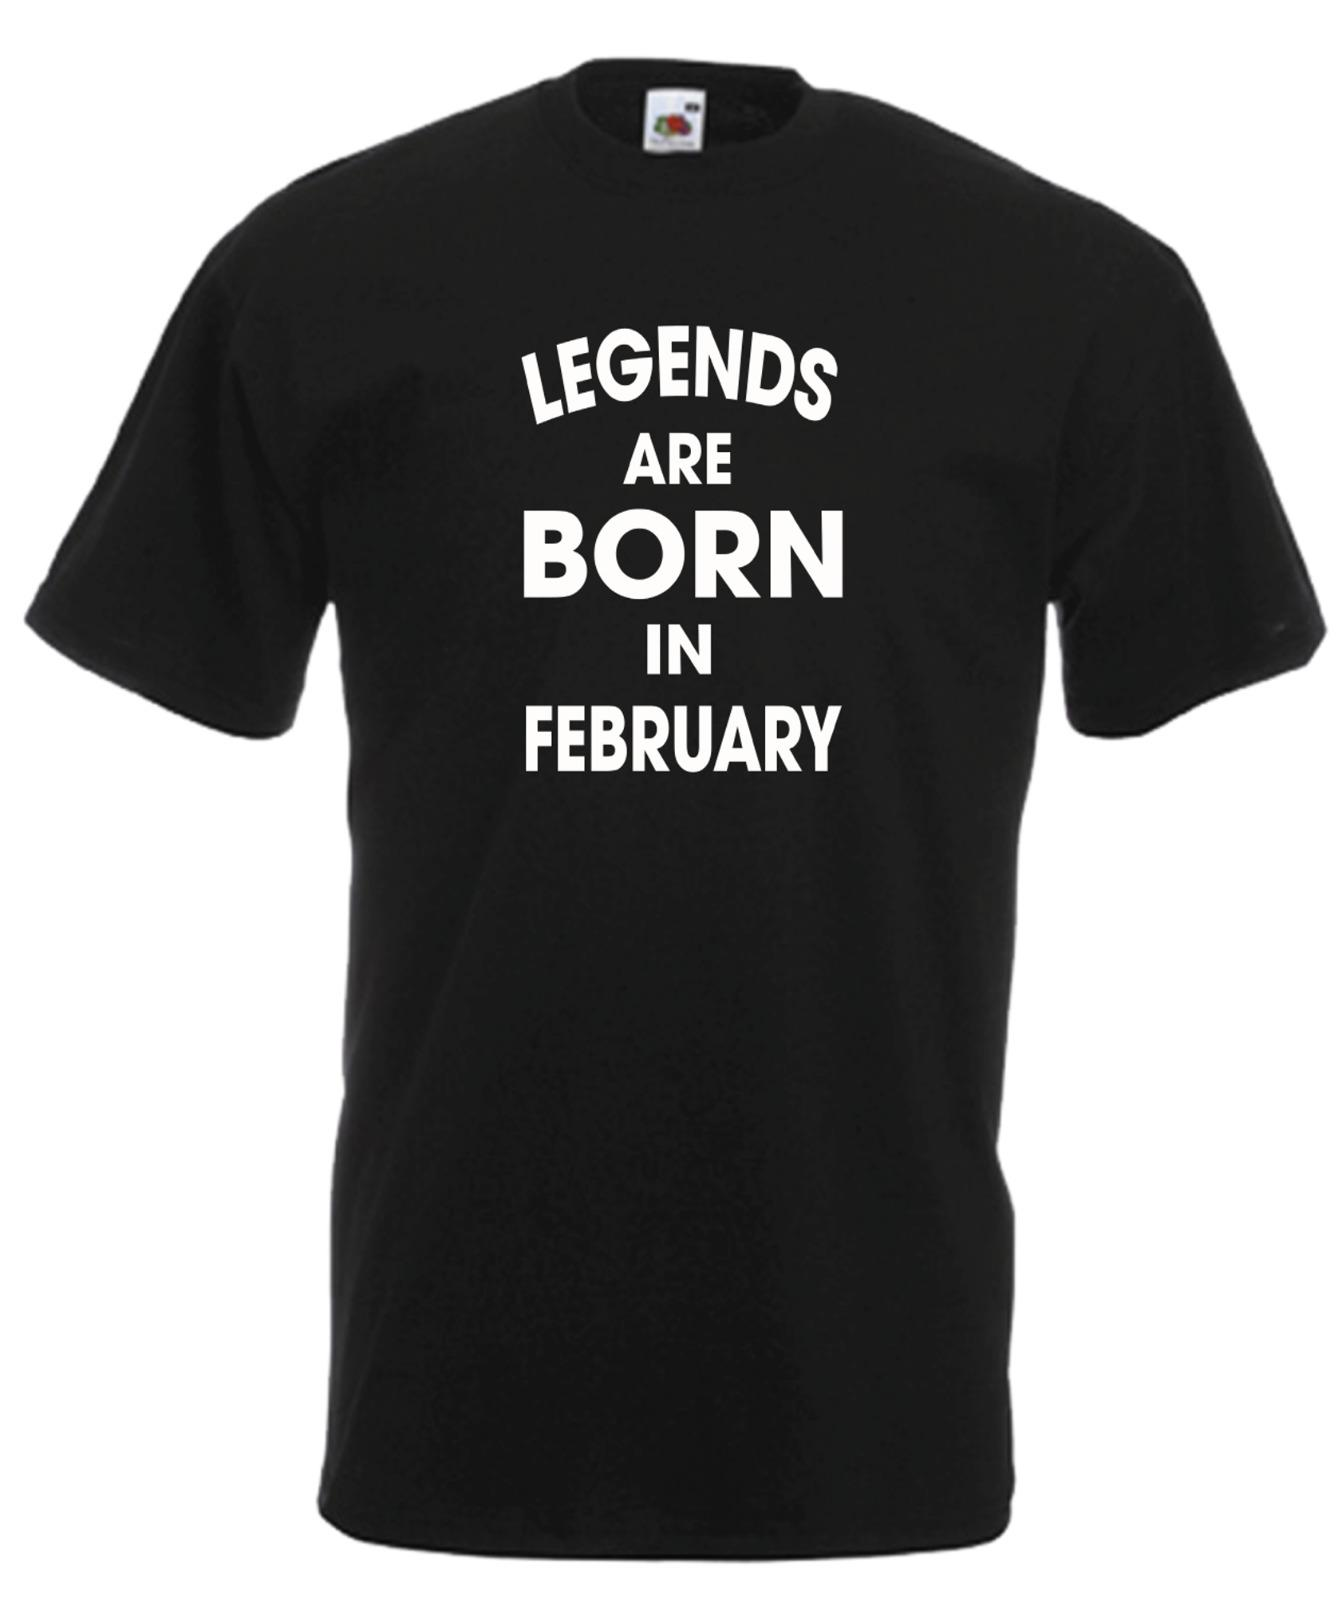 c7cd25273 LEGENDS ARE BORN IN FEBRUARY Funny Xmas Birthday Gift Mens Womens T SHIRT  TOP Short Sleeve Plus Size T Shirt Shirt Design Tees From Cancup, $16.24|  DHgate.